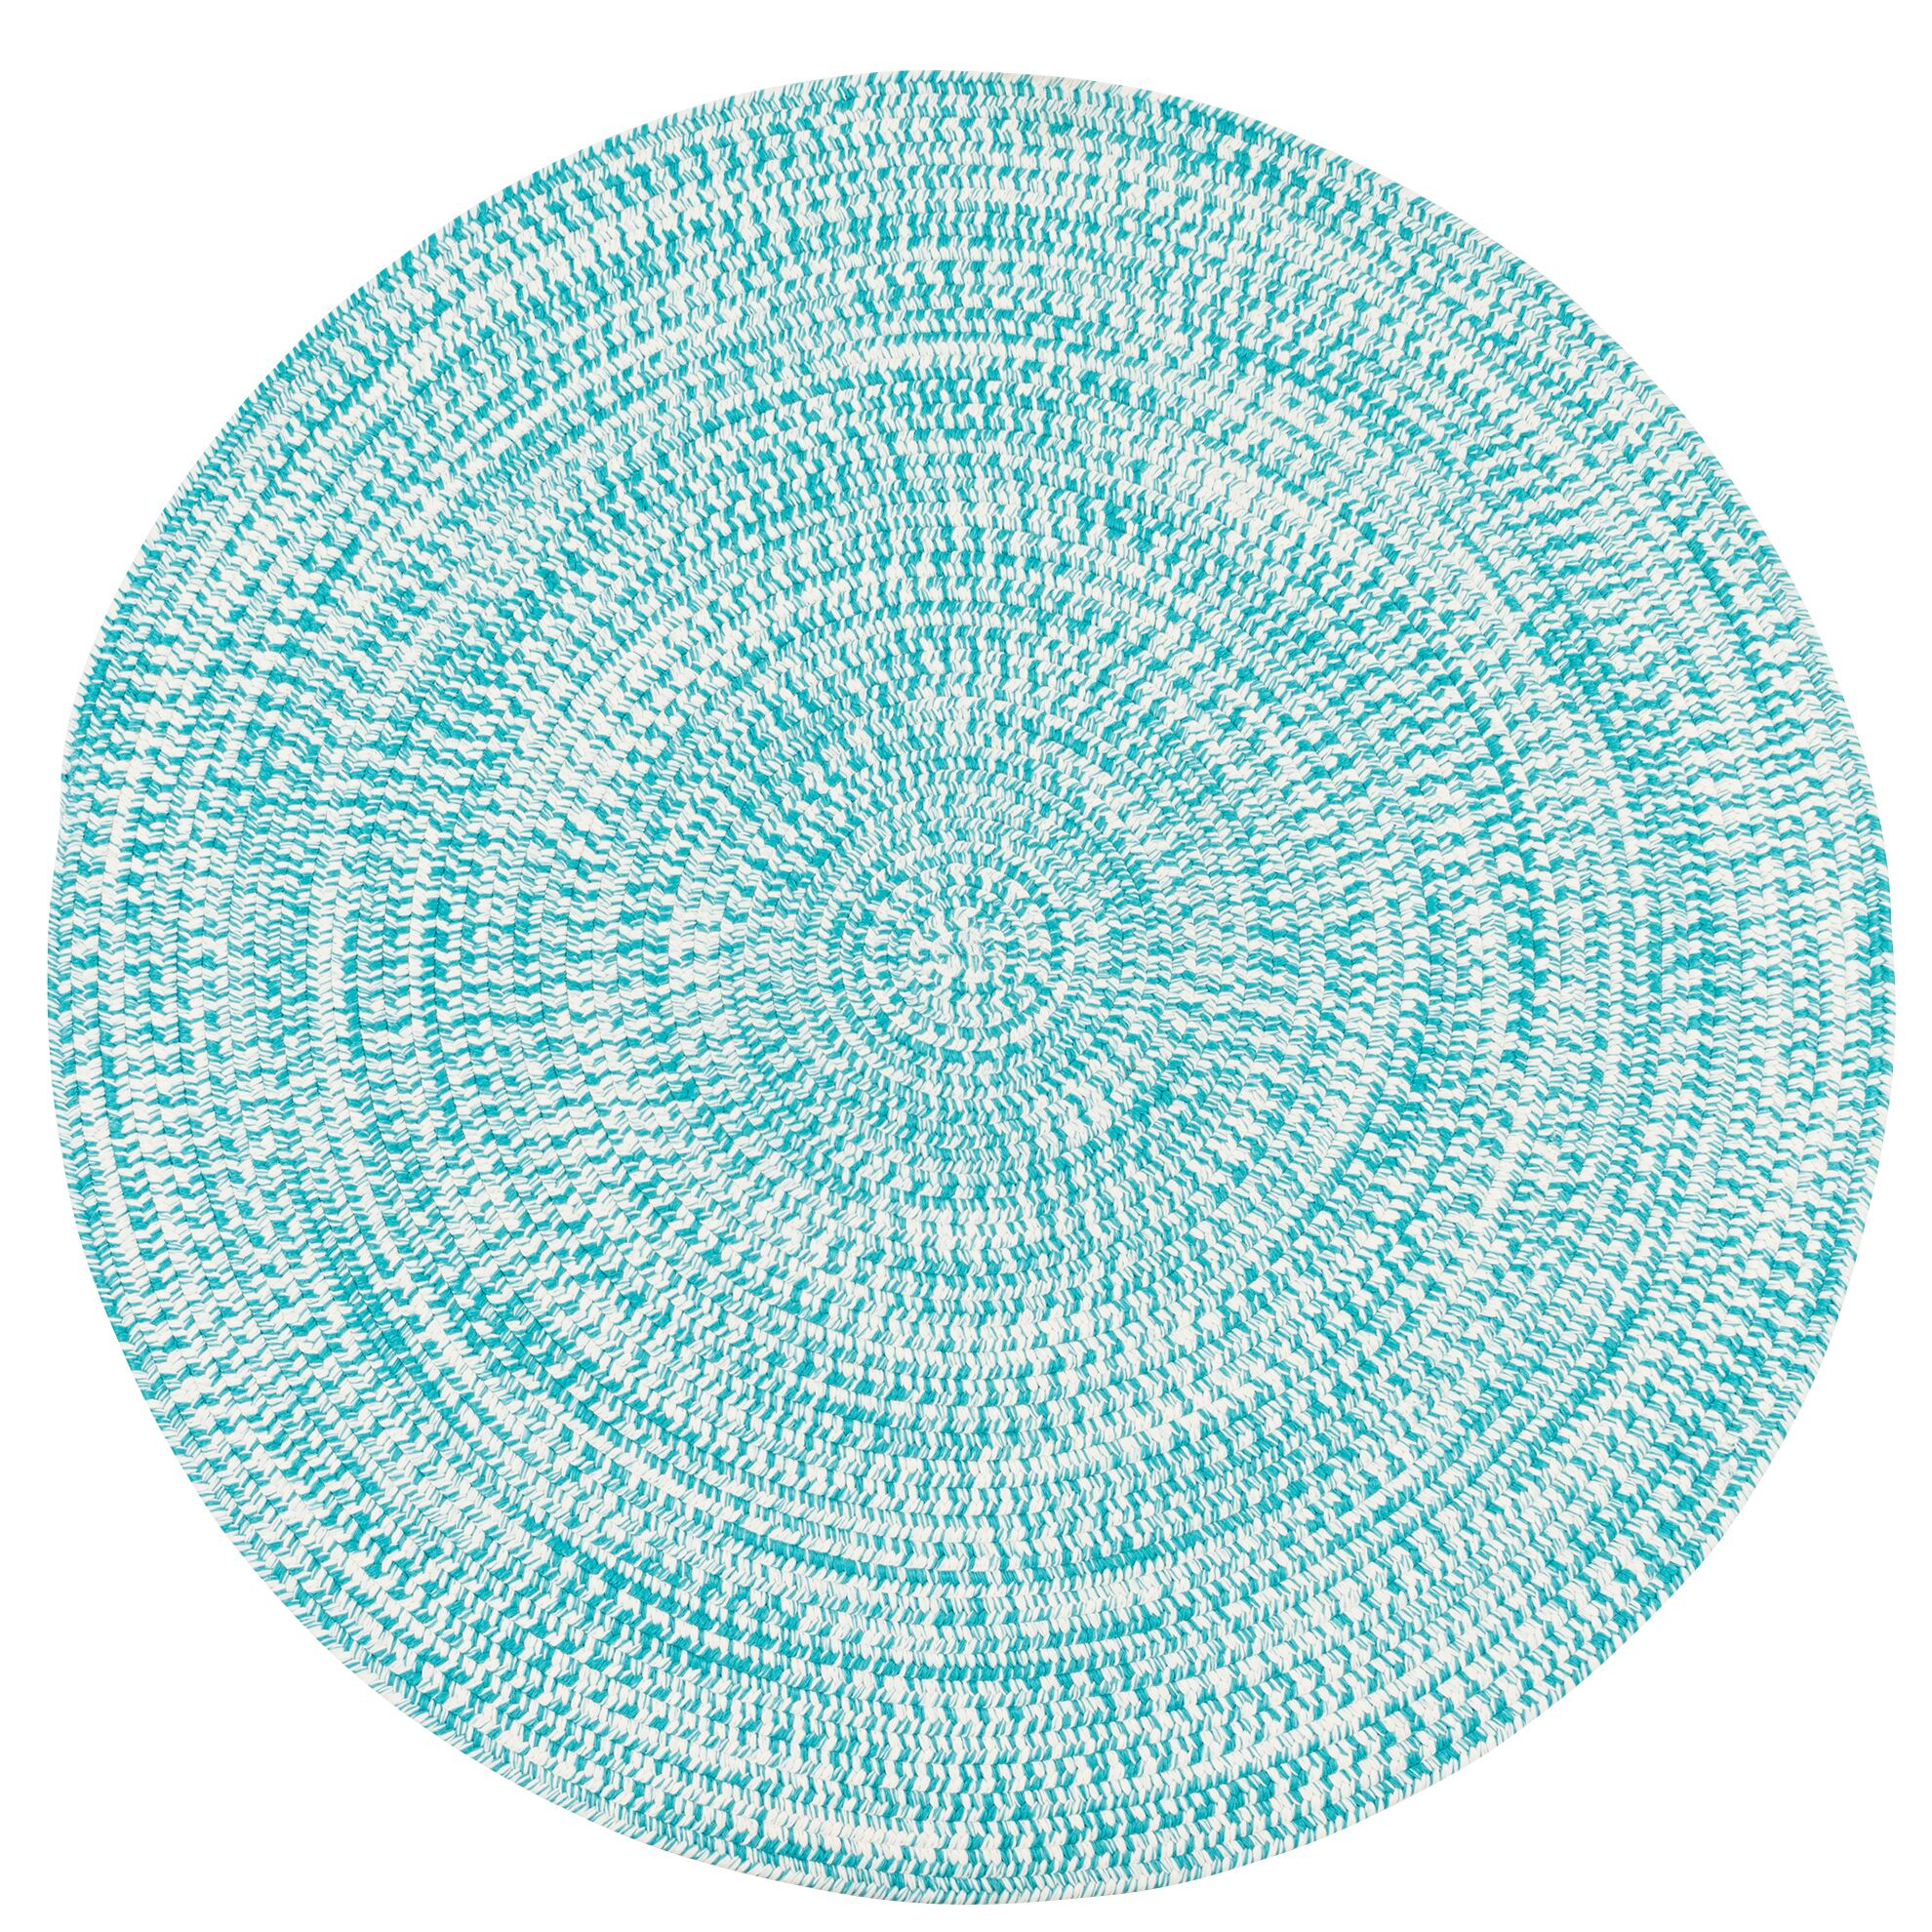 Longe Tweed Hand-Braided Aqua Indoor/Outdoor Area Rug Rug Size: Round 7'